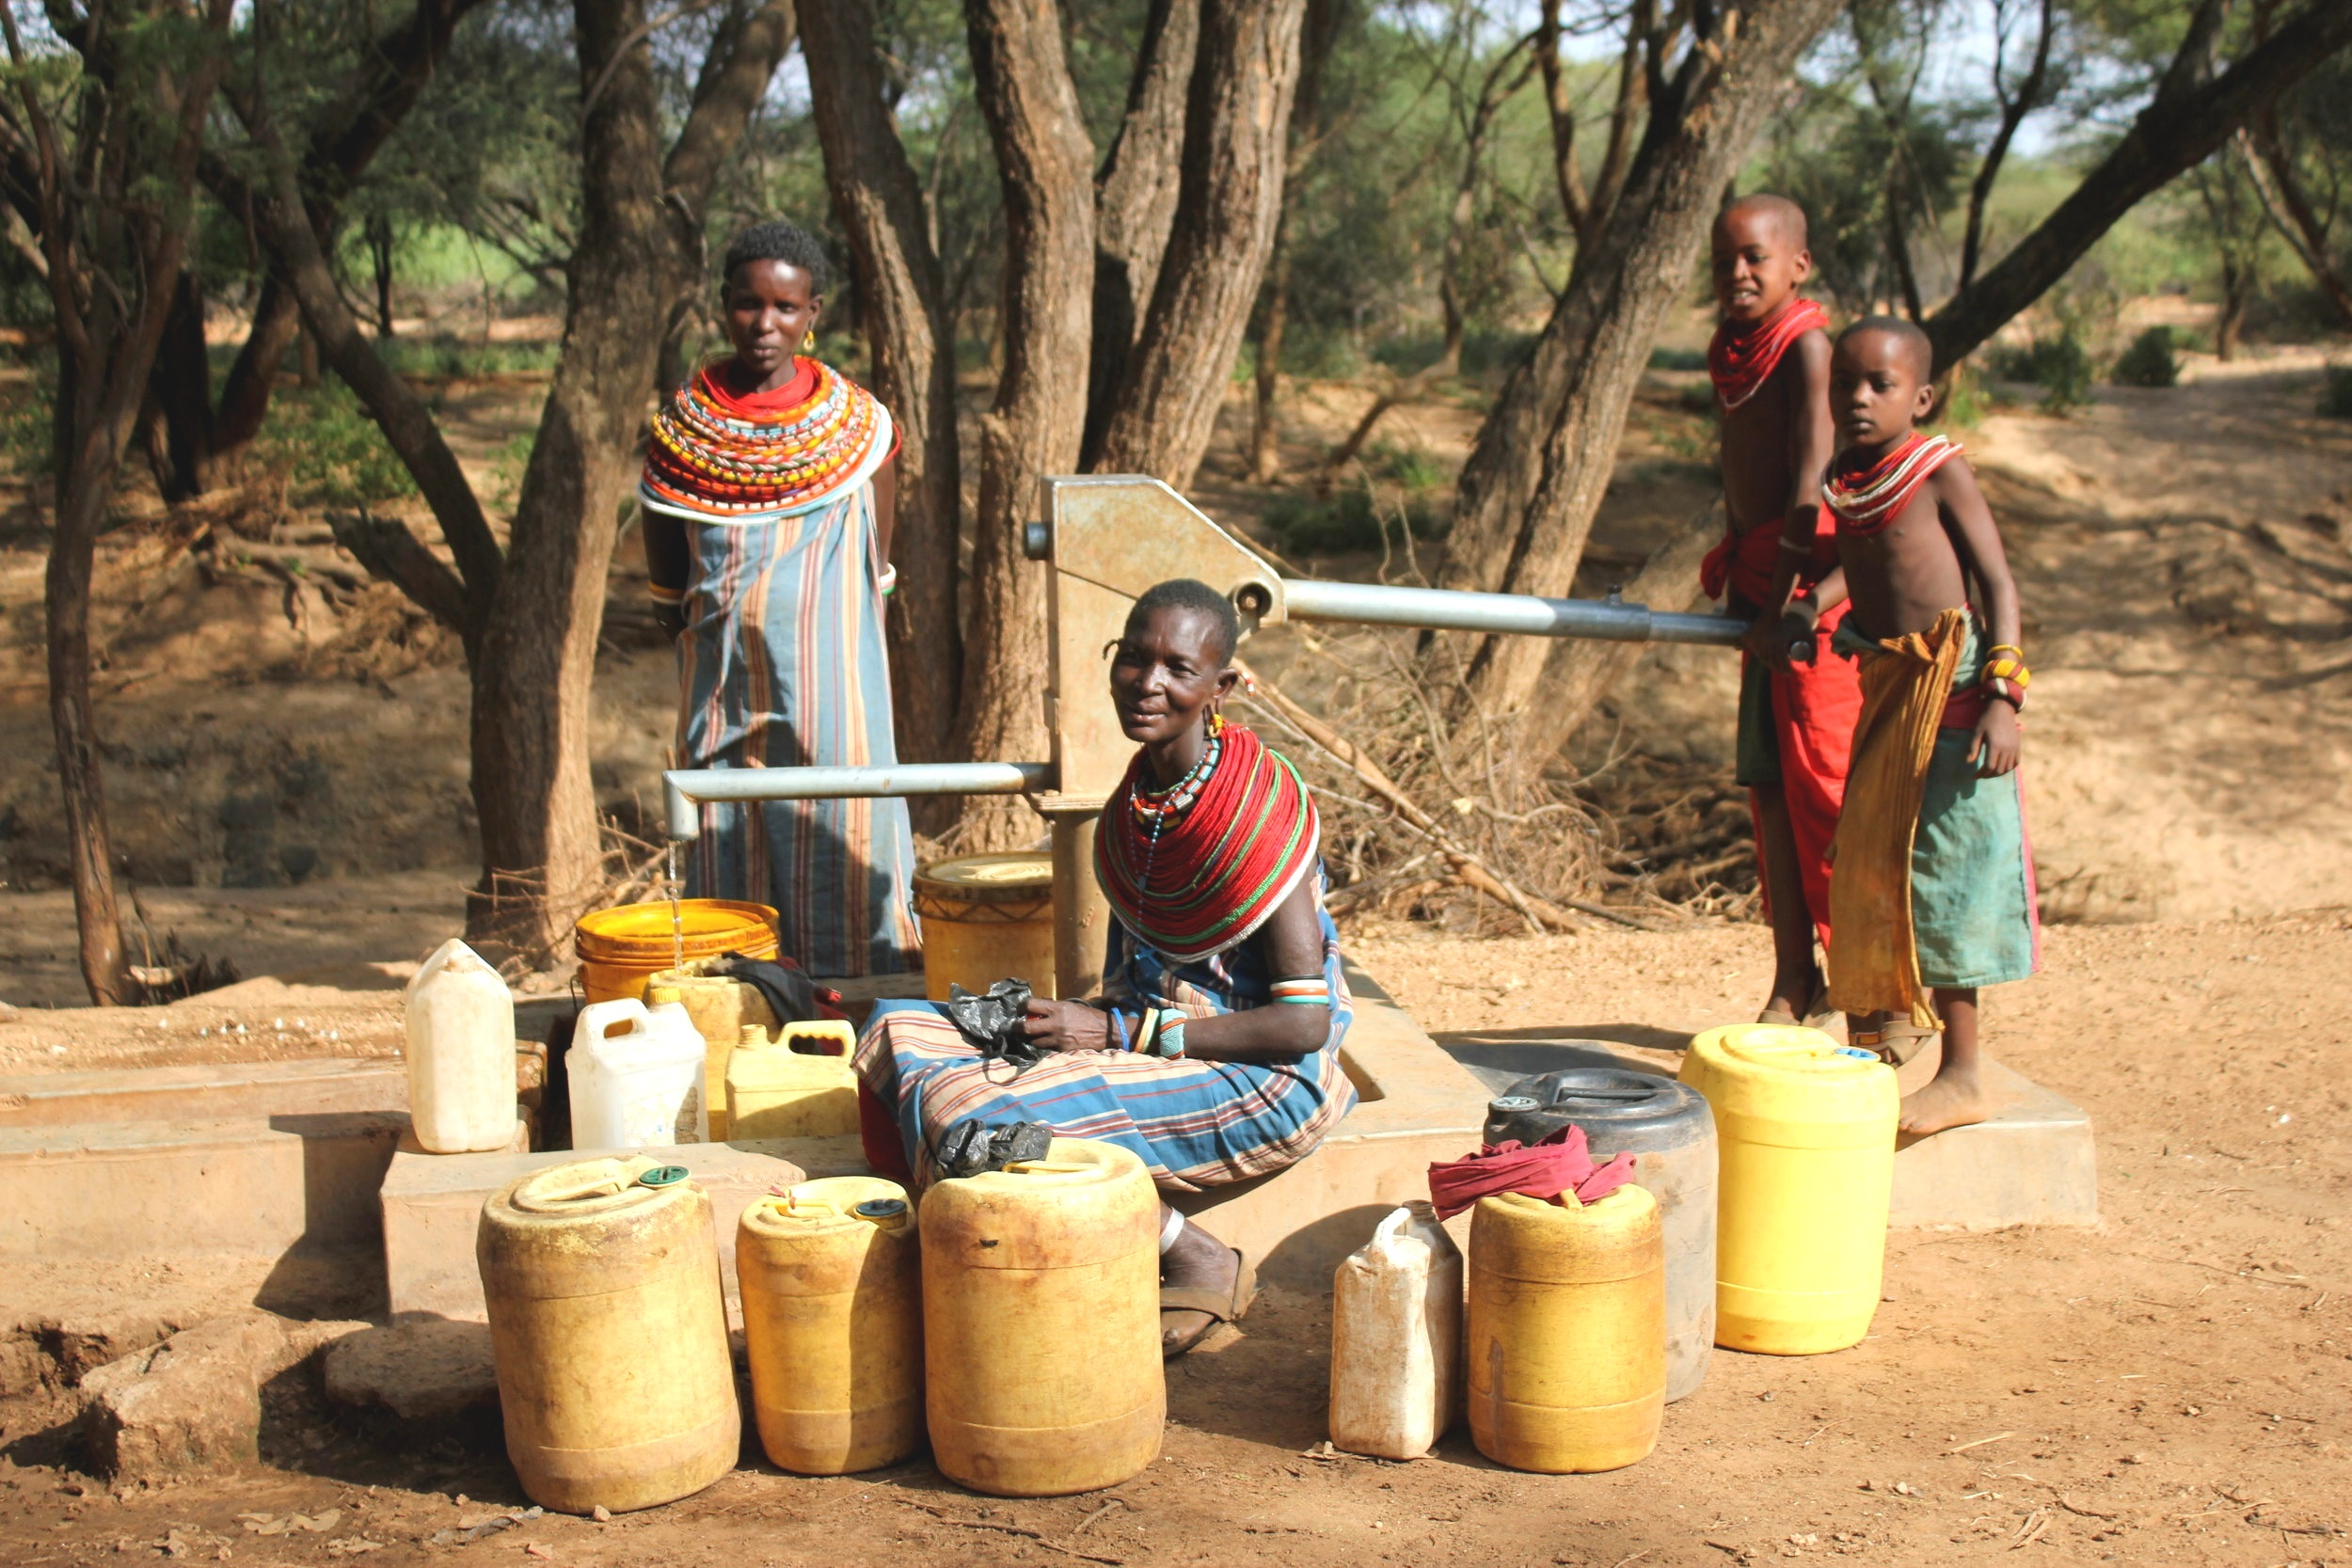 Women and Children with Jerry Cans by Water Well, Samburu Kenya Africa